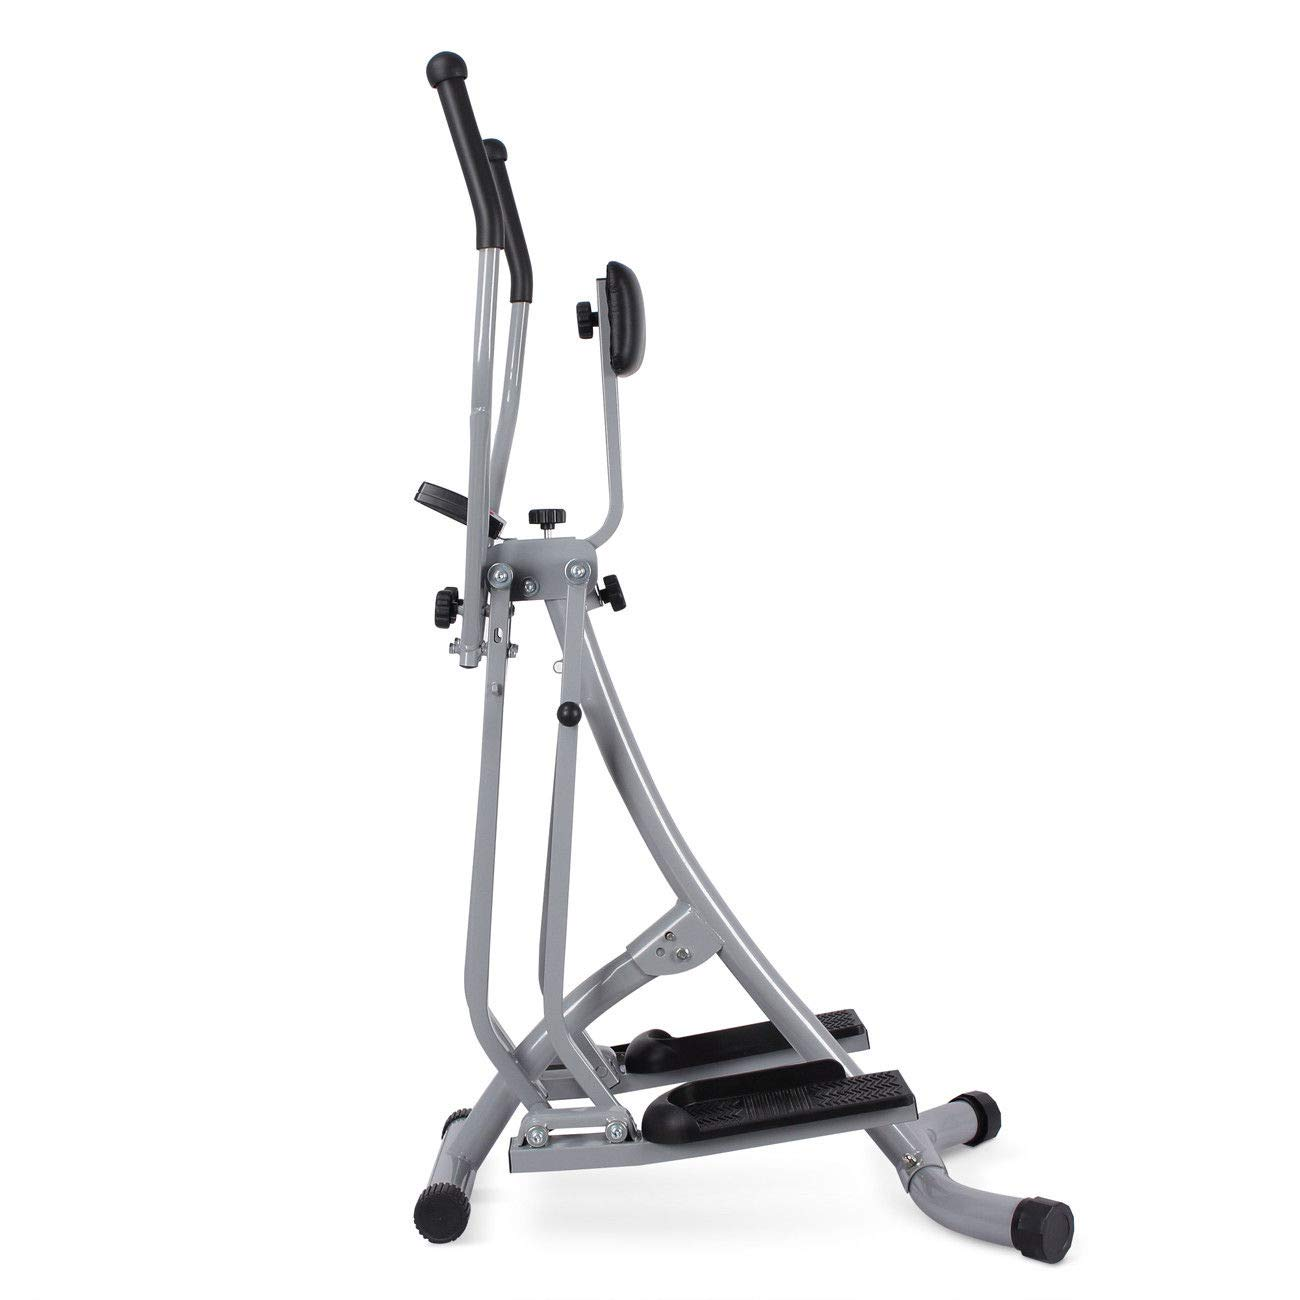 goodyusstore 180 Free-Motions Heavy Duty Low Impact Foldaway Air Walker Exercise Home Equipment with LCD Monitor by goodyusstore (Image #2)